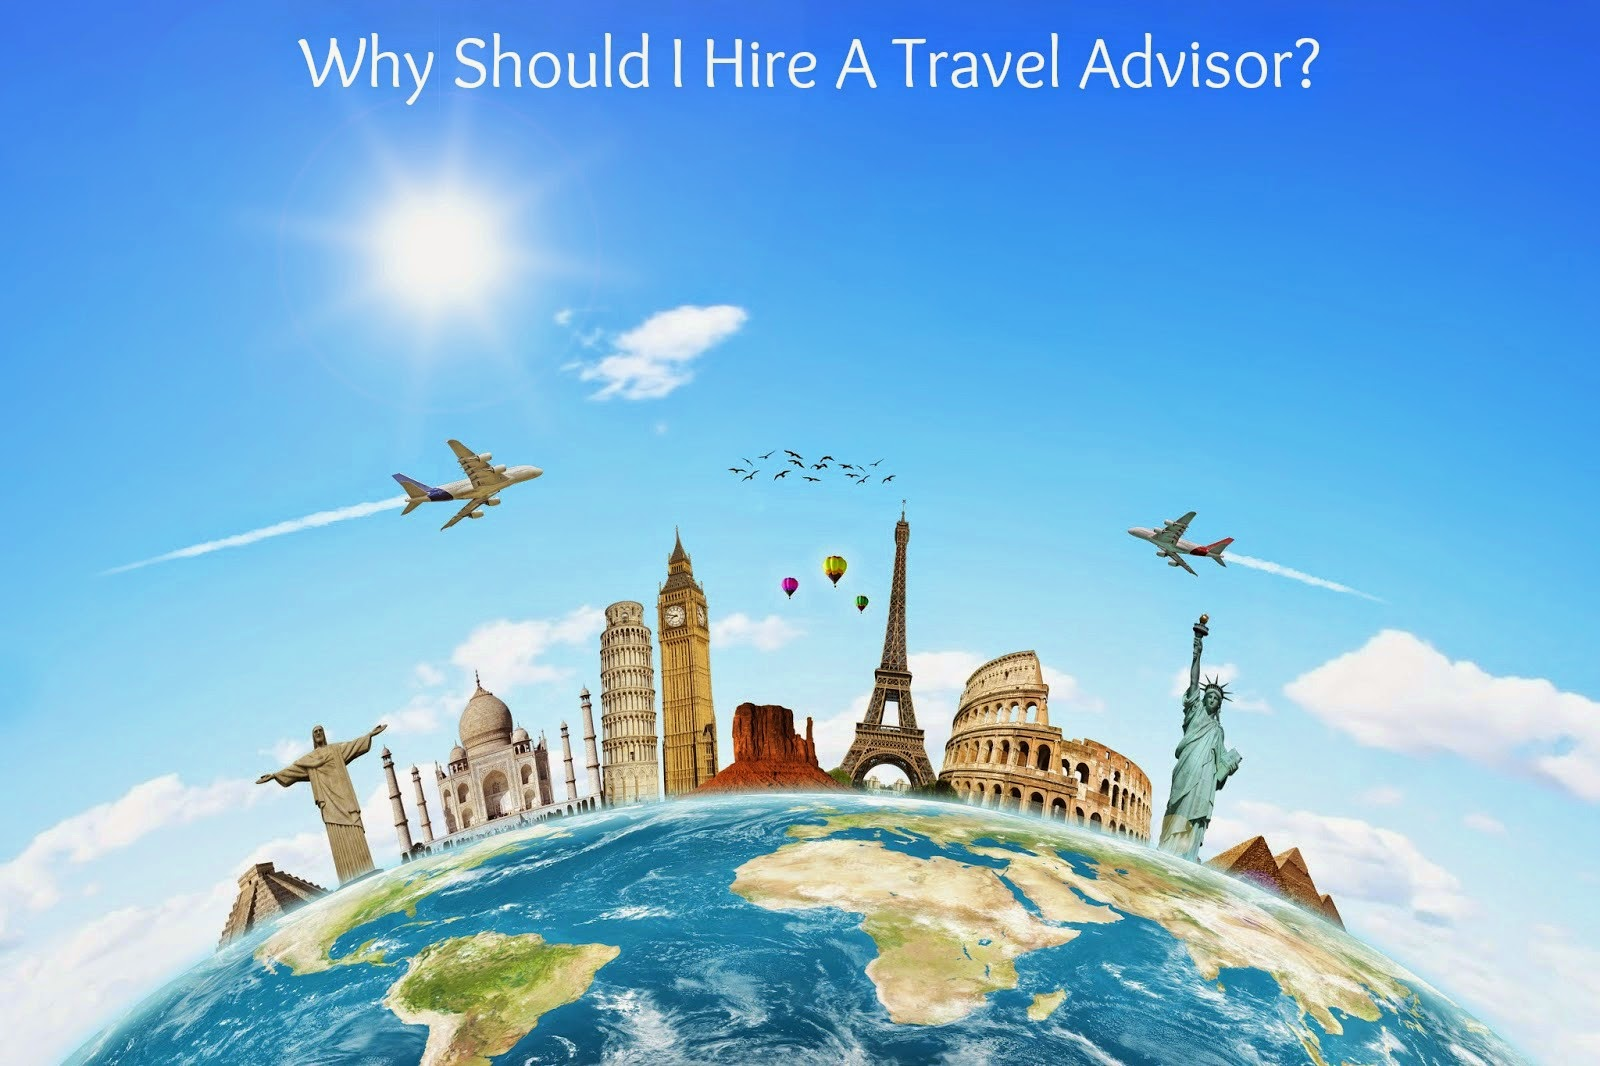 Why NOT Use A Travel Advisor?